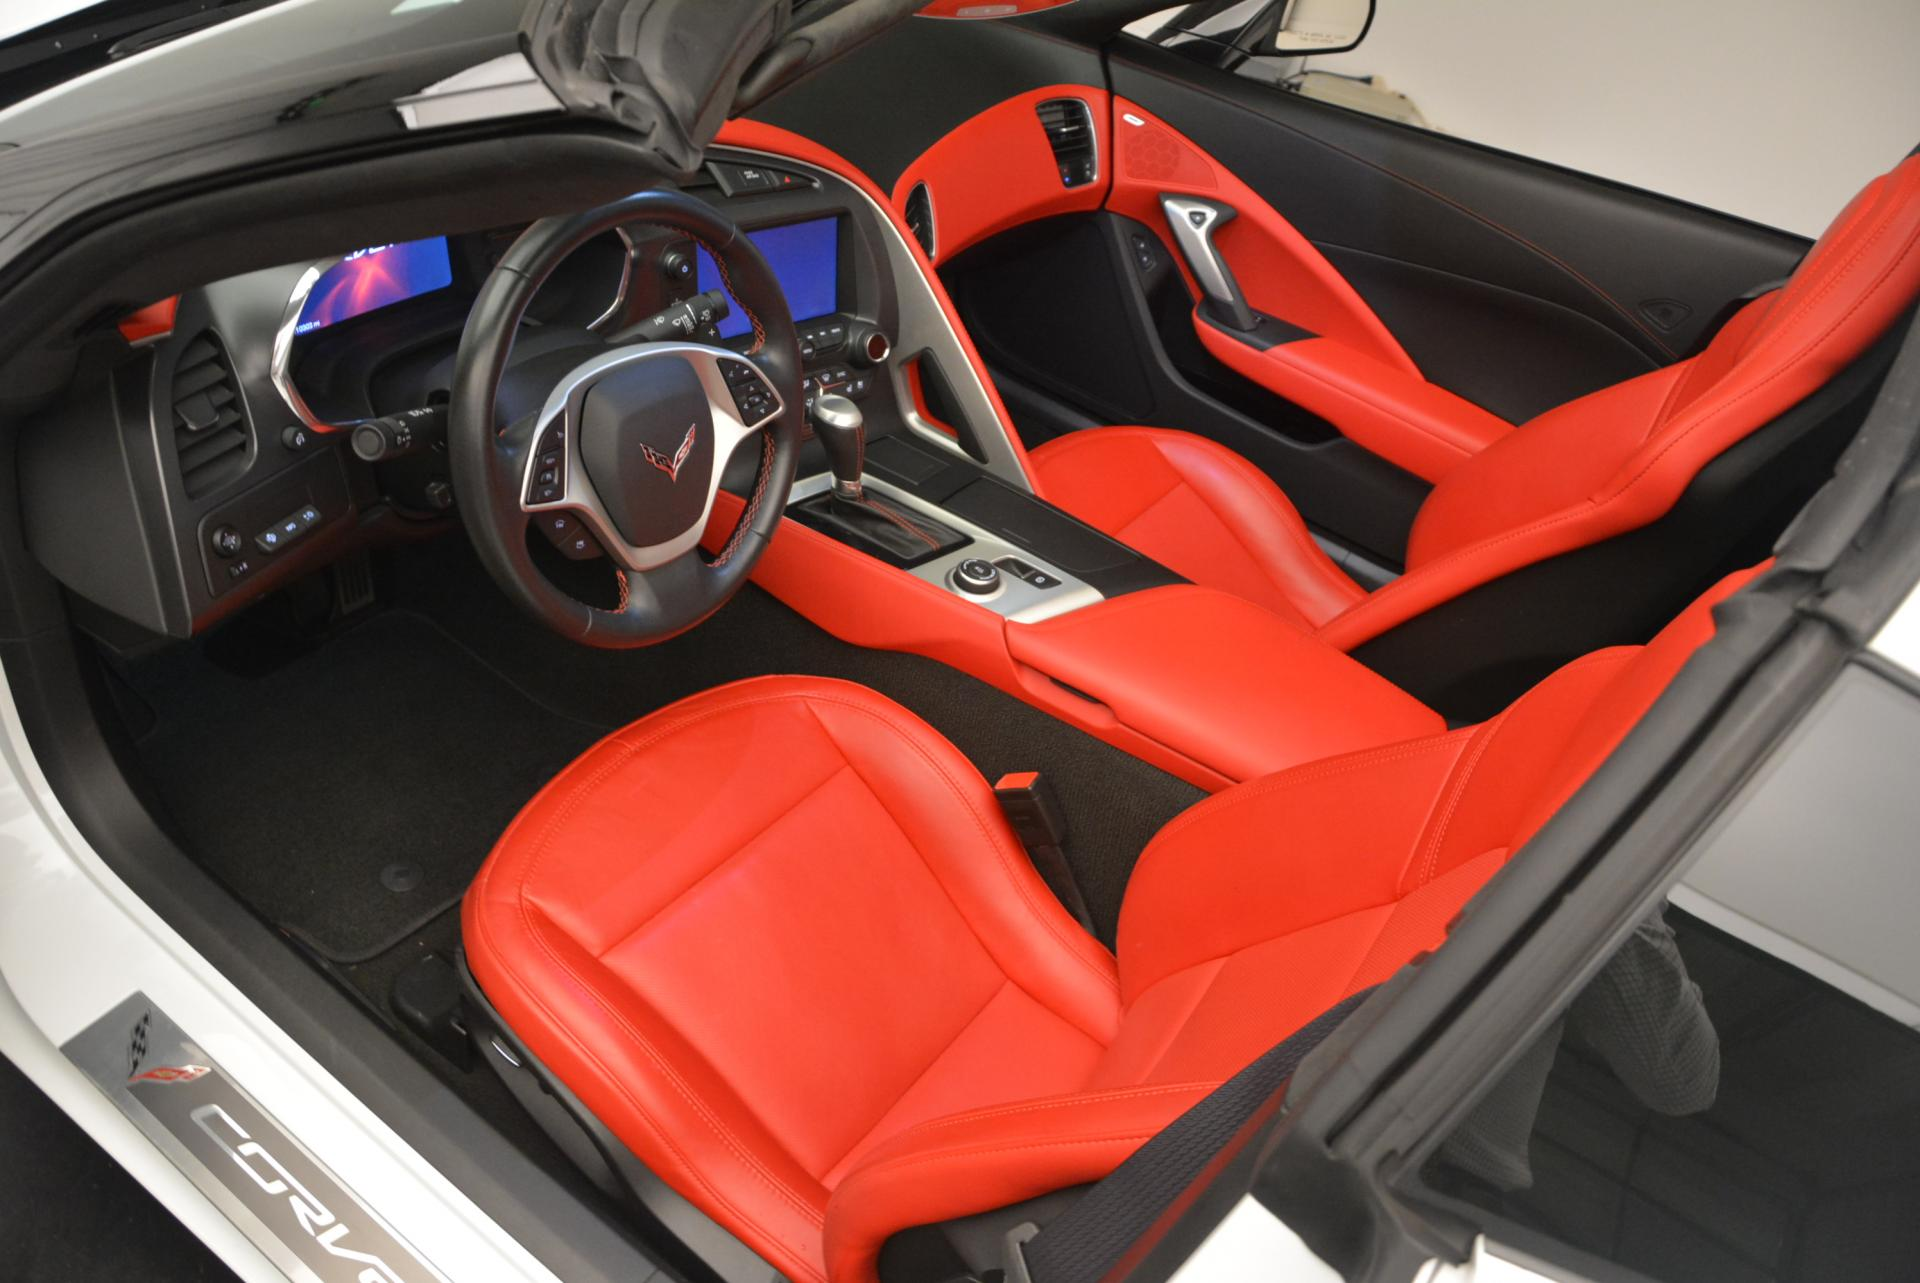 Used 2014 Chevrolet Corvette Stingray Z51 For Sale In Greenwich, CT. Alfa Romeo of Greenwich, 7089 529_p16